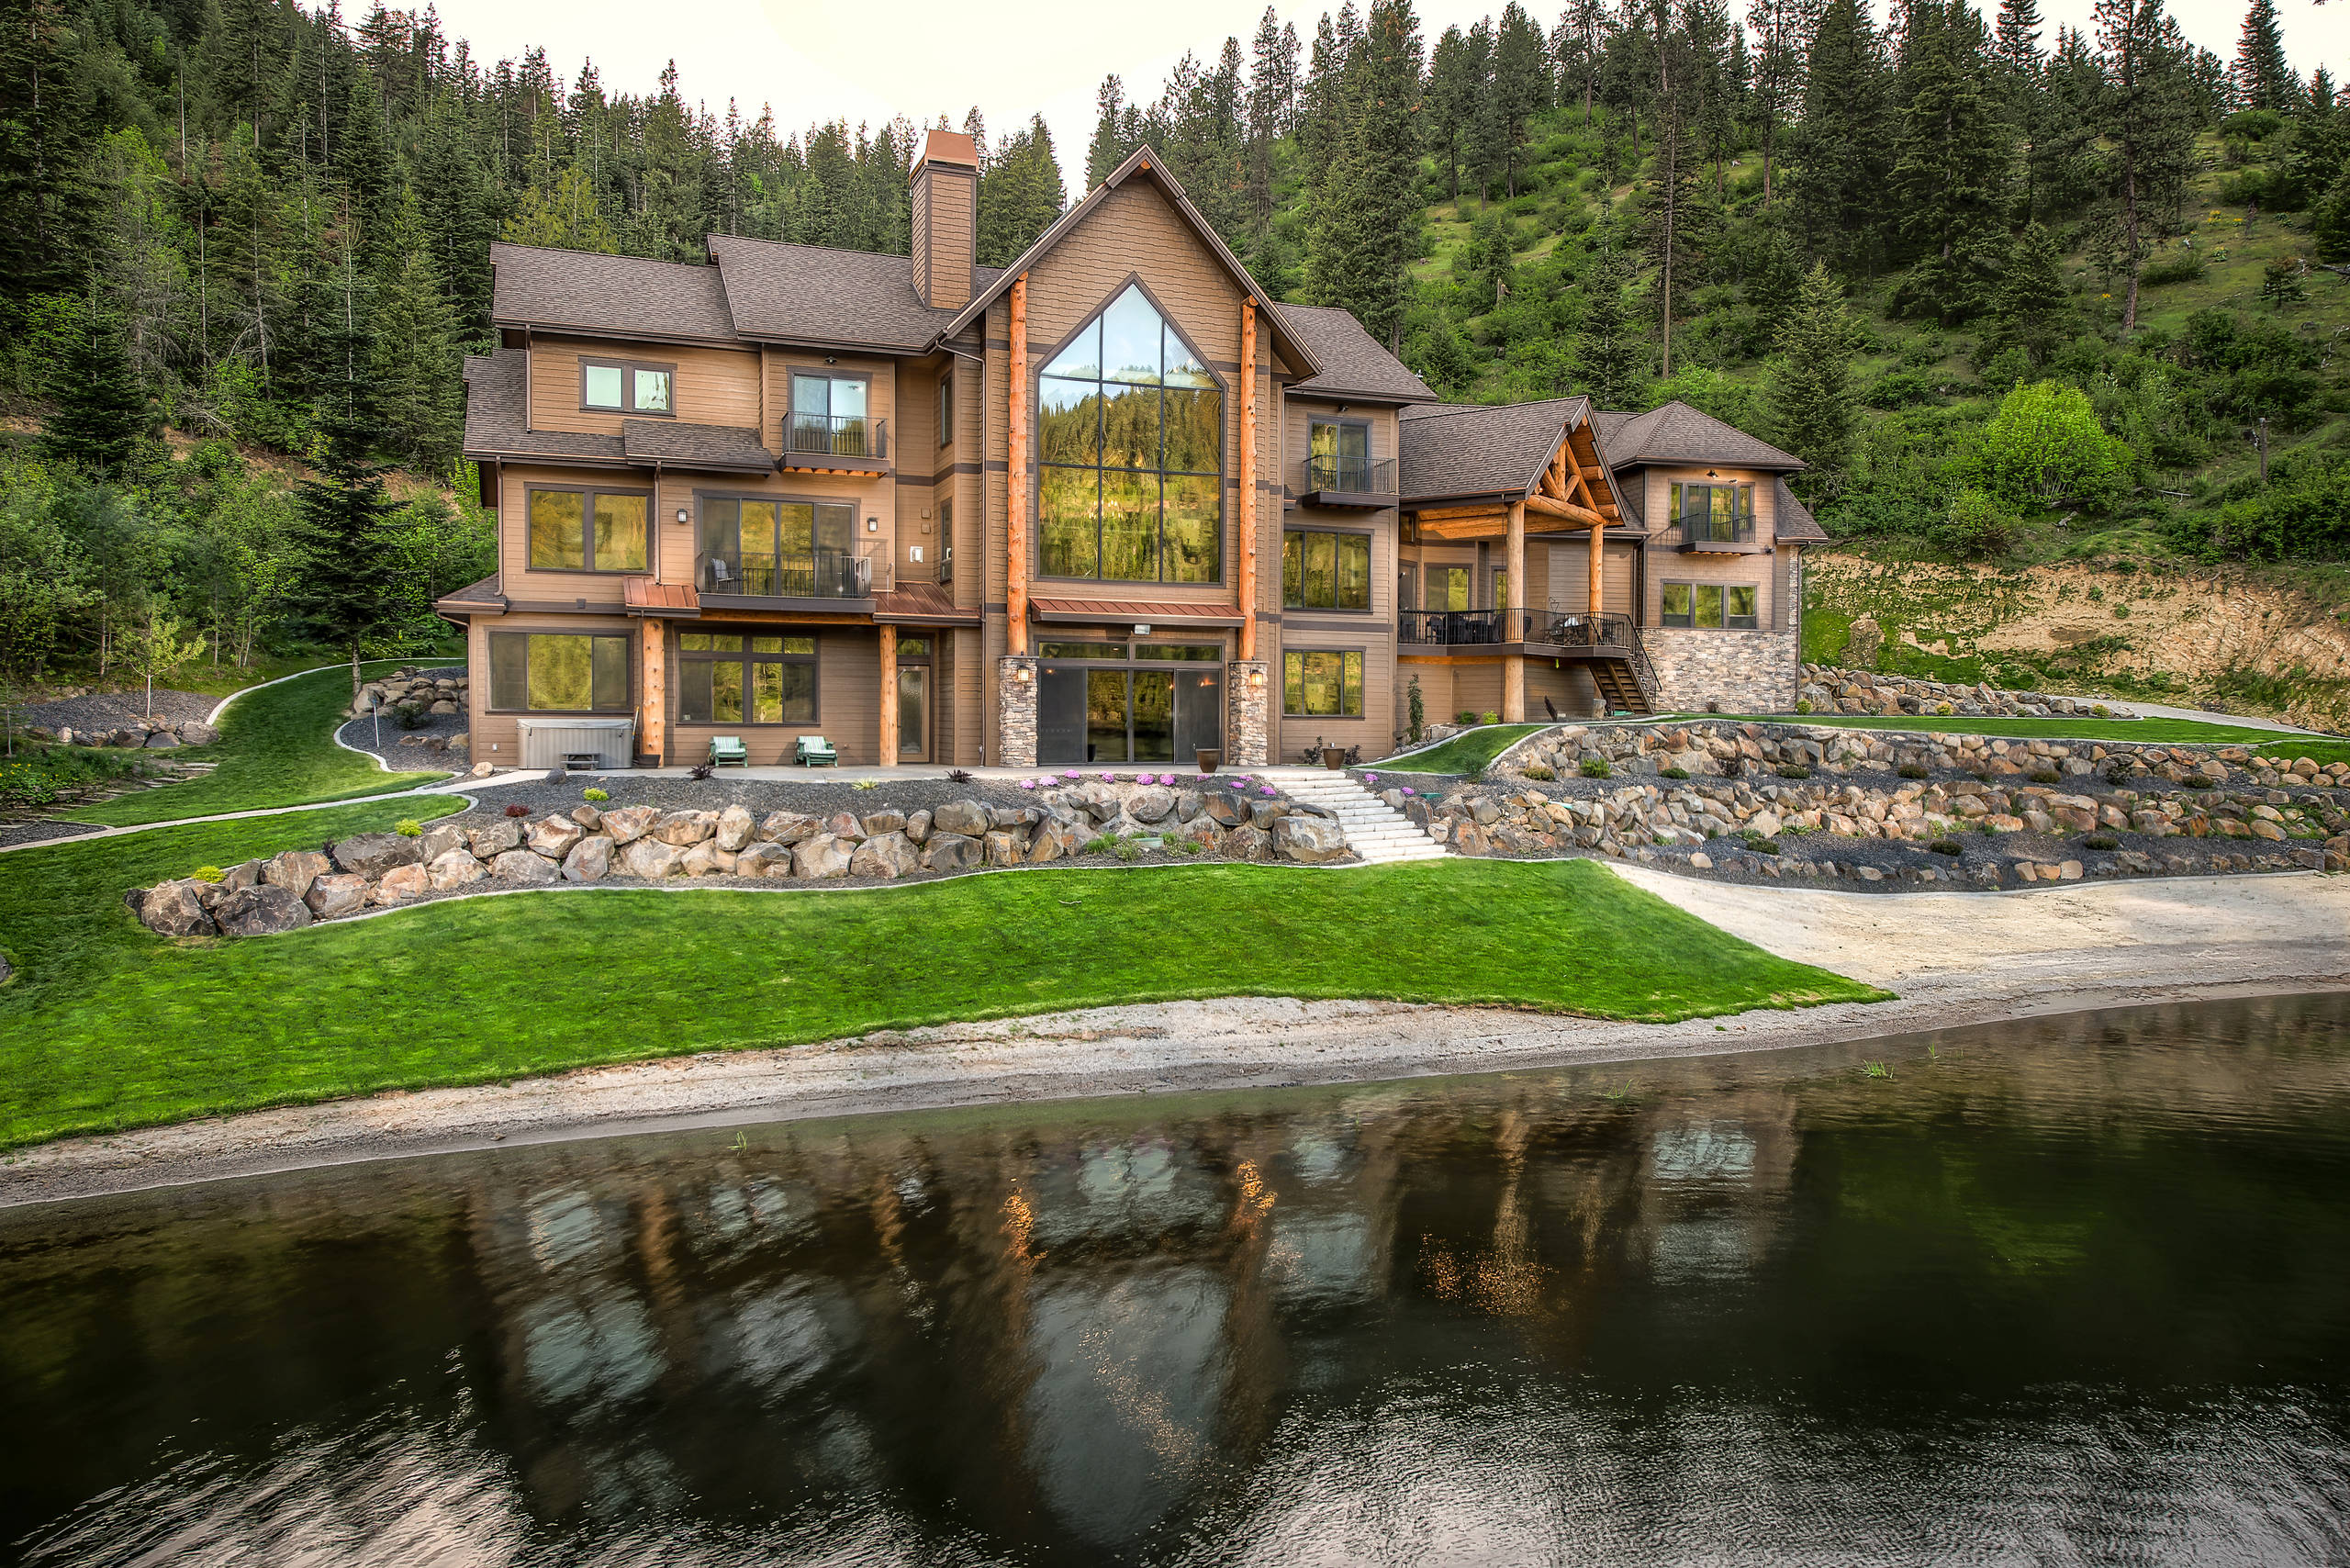 exterior rustic lake lodge designs must custom spectacular homes residential glass aspen built source doors architectureartdesigns builders commercial river